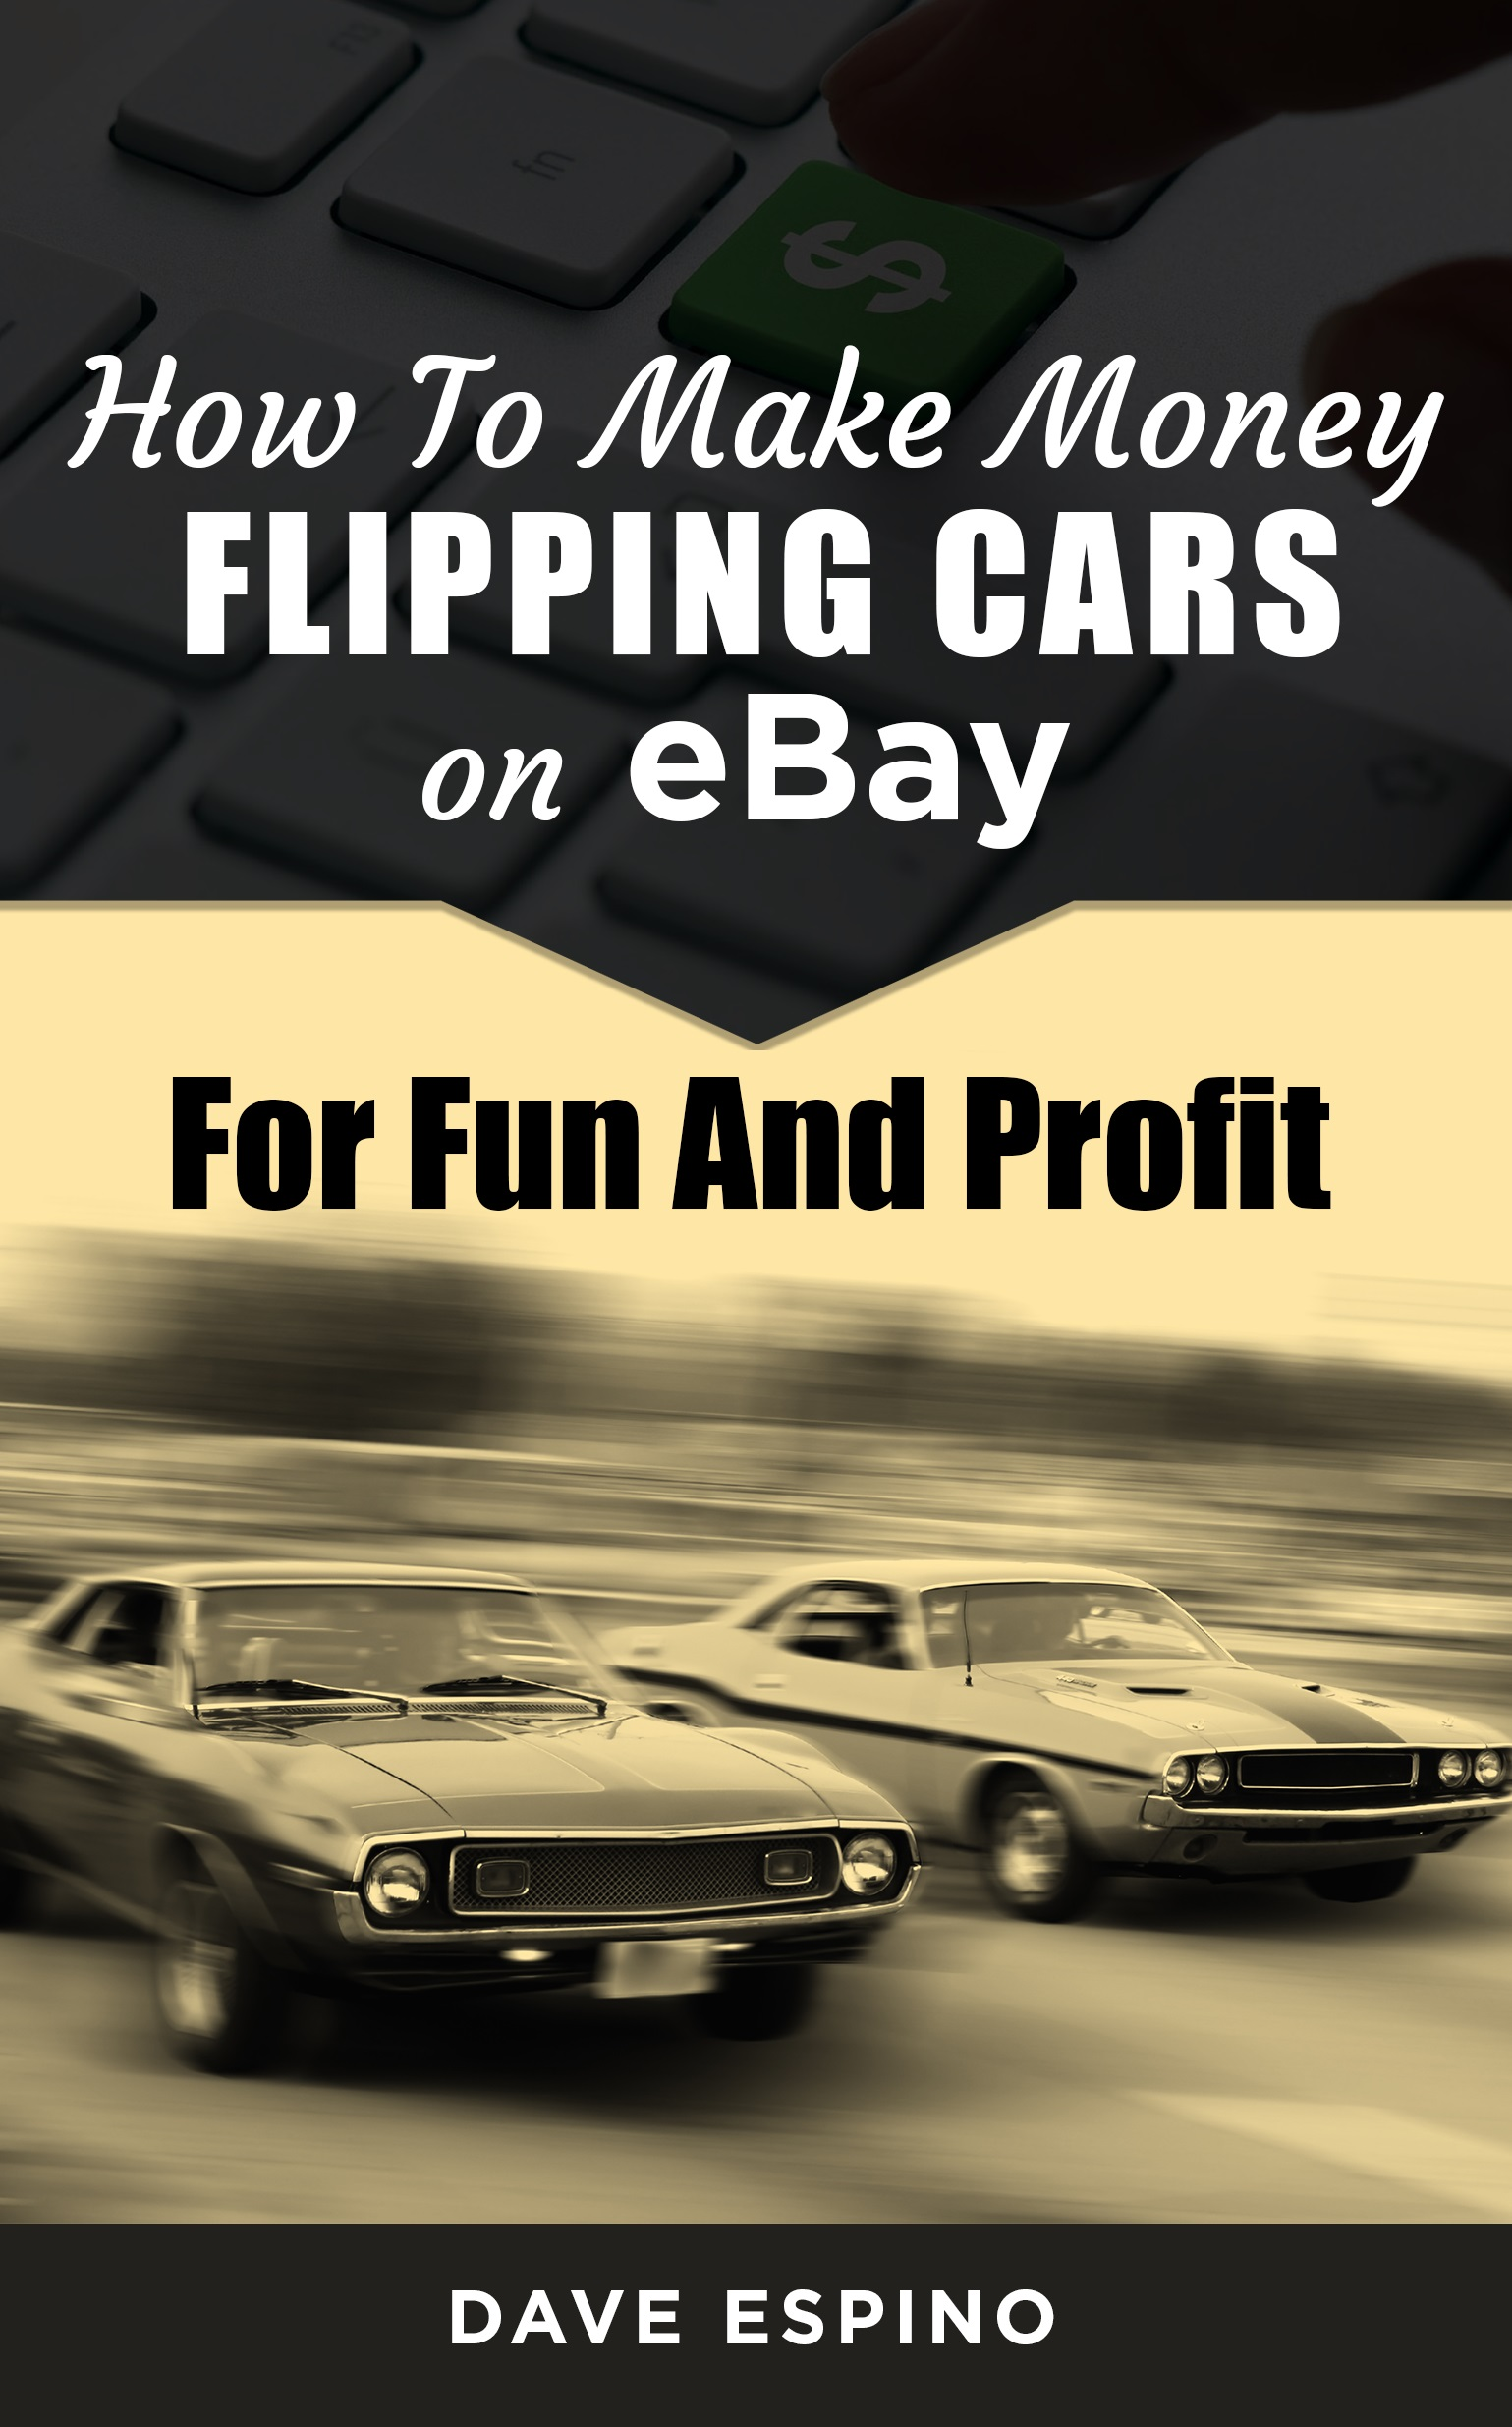 (How To Make Money Flipping Cars On eBay For Fun And Profit (Online Video Course) [Online Code] )